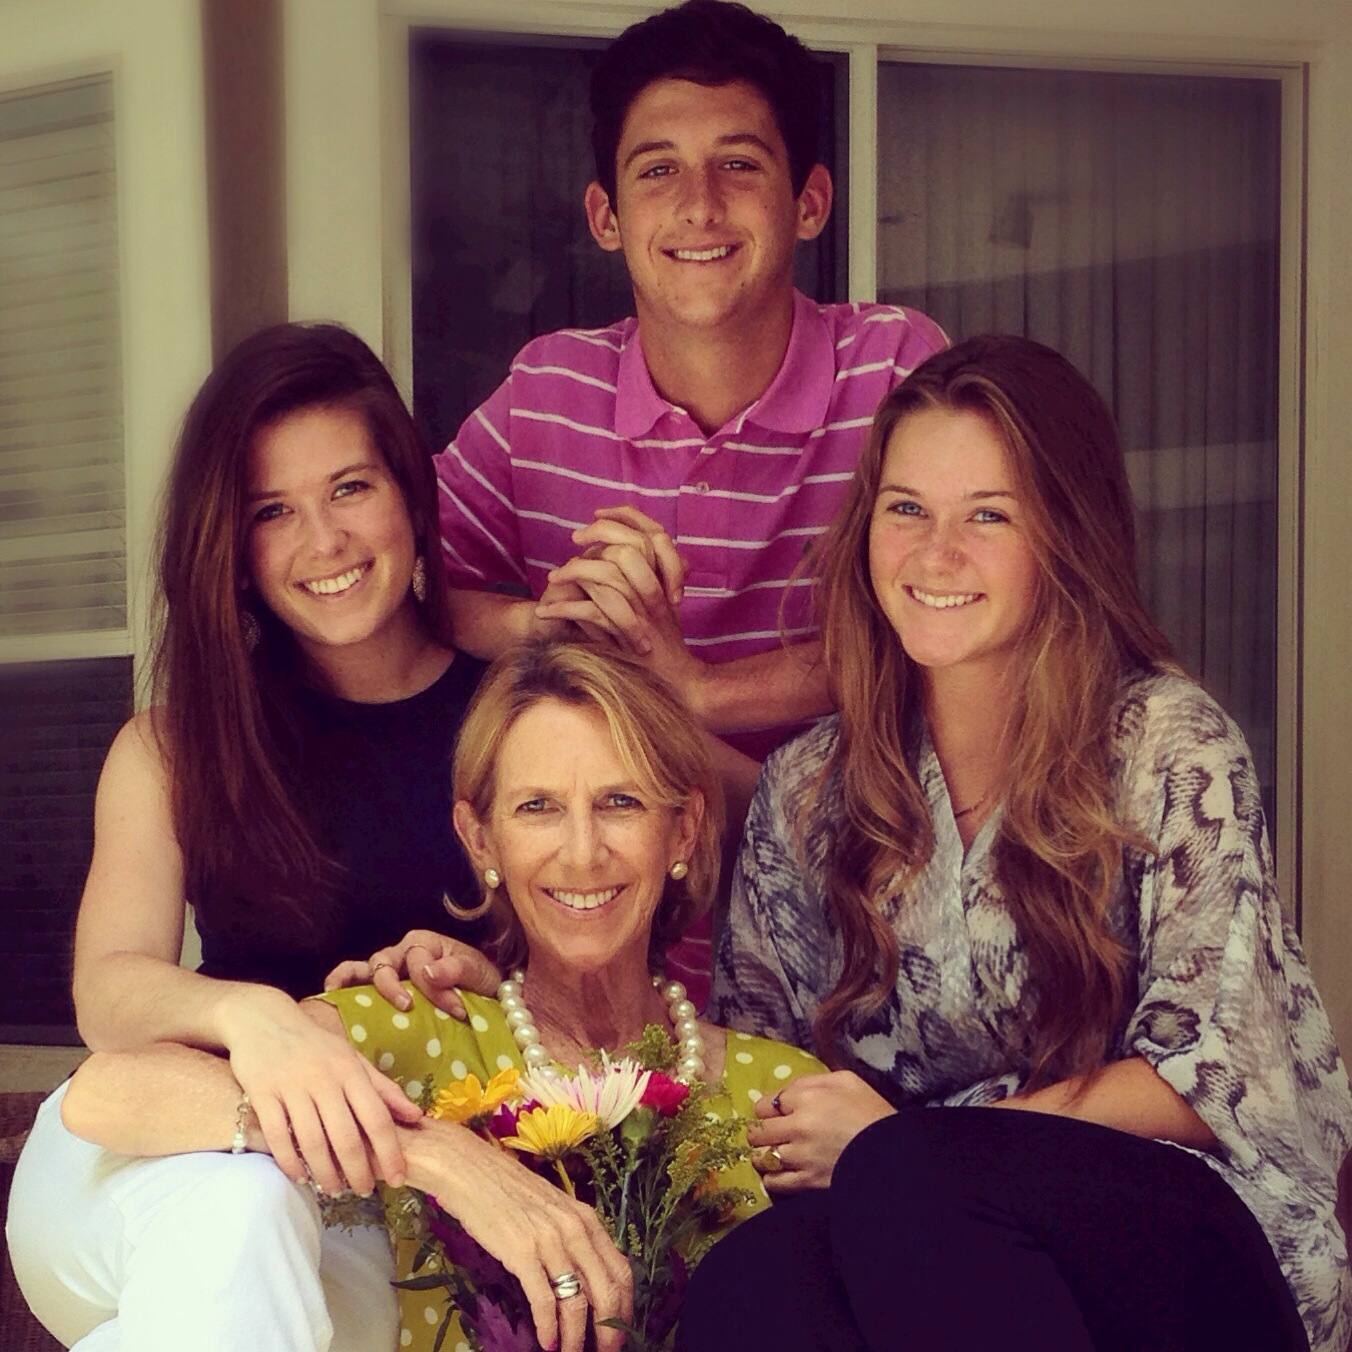 Mother's Day 2014 - Georgia Mae, her mother and siblings.